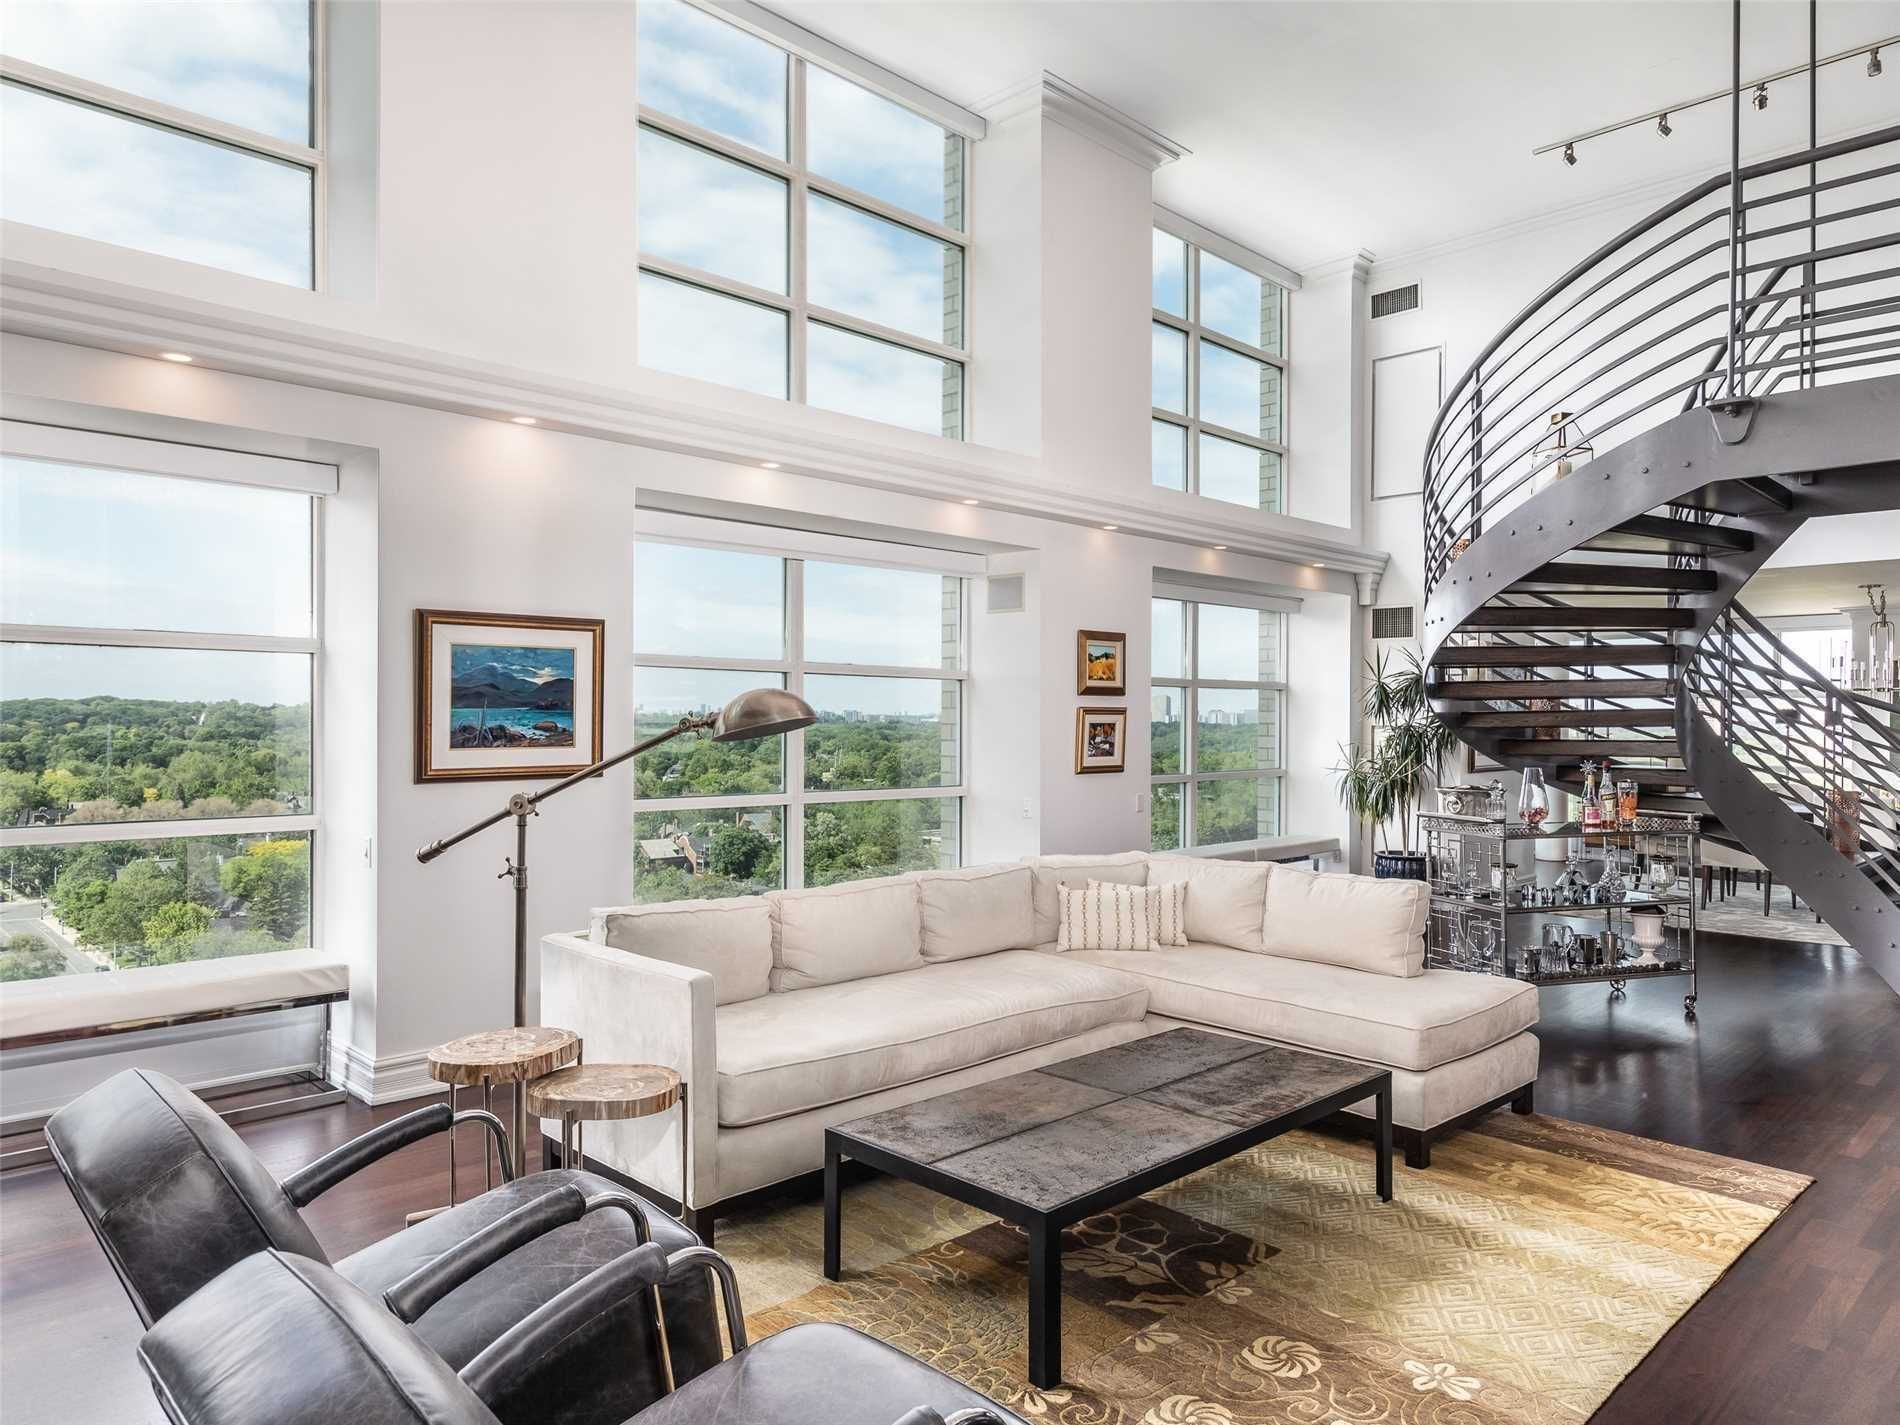 409 Bloor St E, unit Ph1 for sale in Yonge and Bloor - image #1